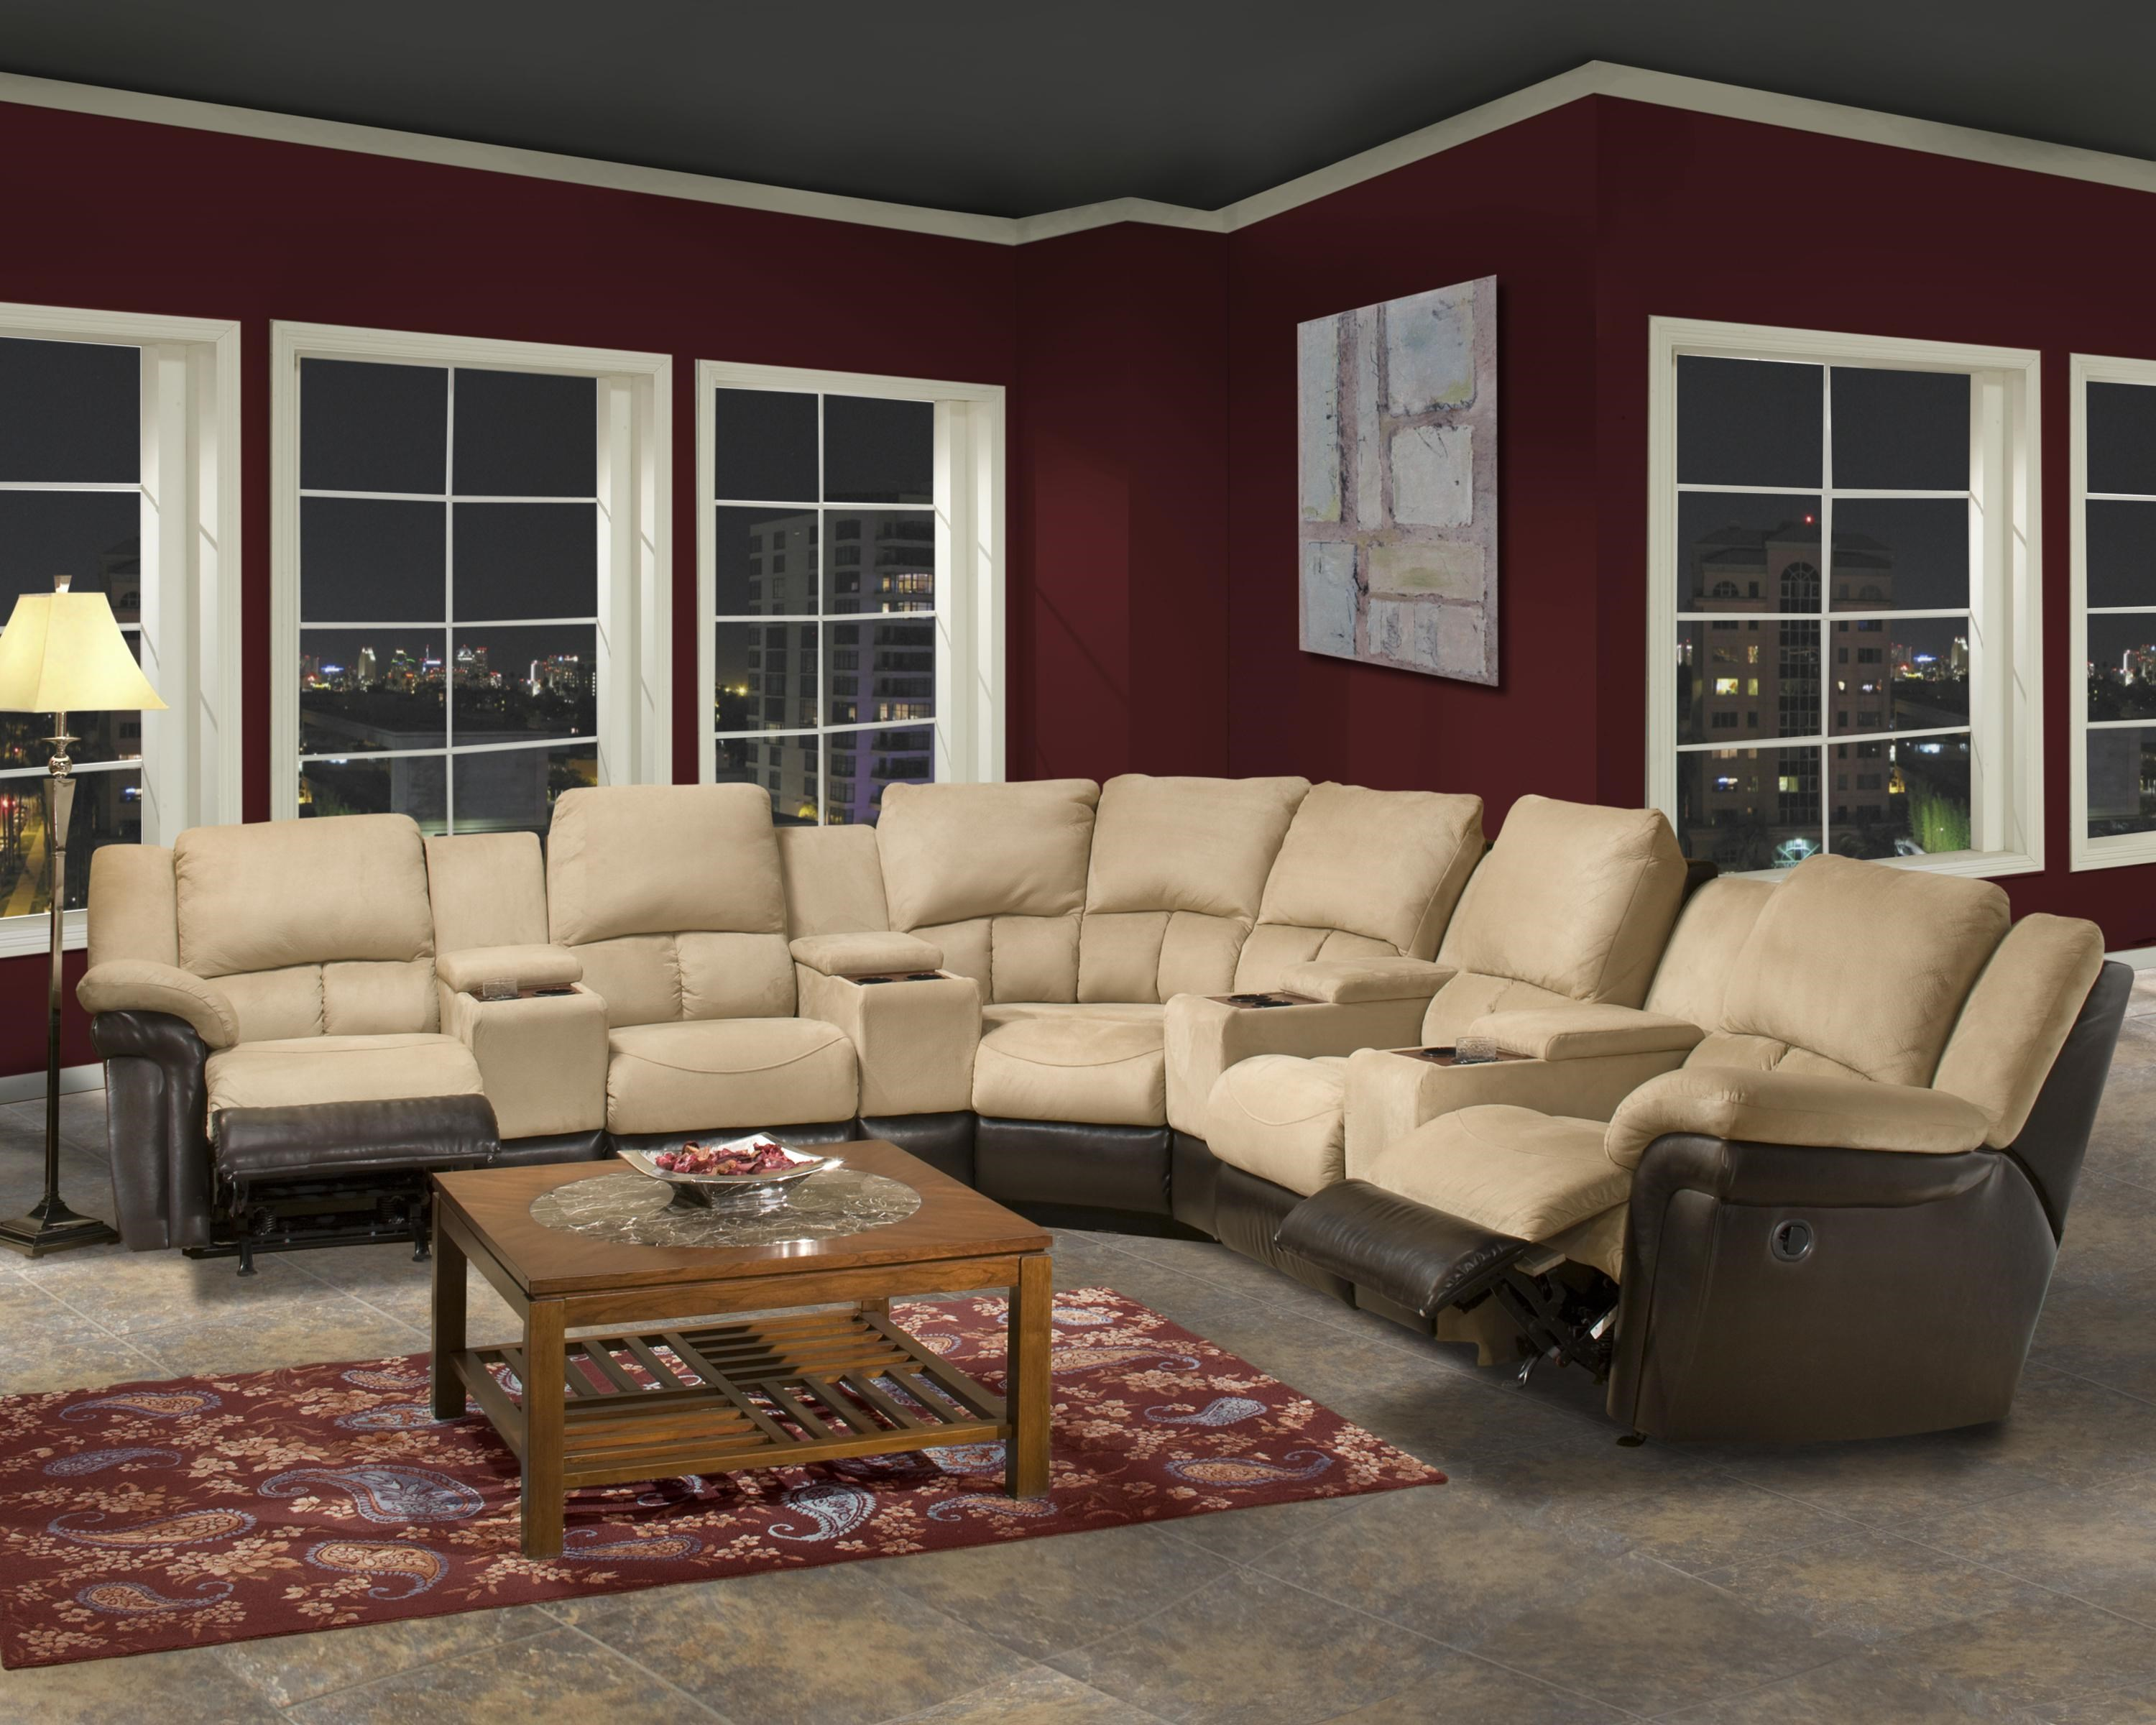 Emerald Home Theater Motion Upholstery Series 9 Piece Reclining Sectional  Sofa